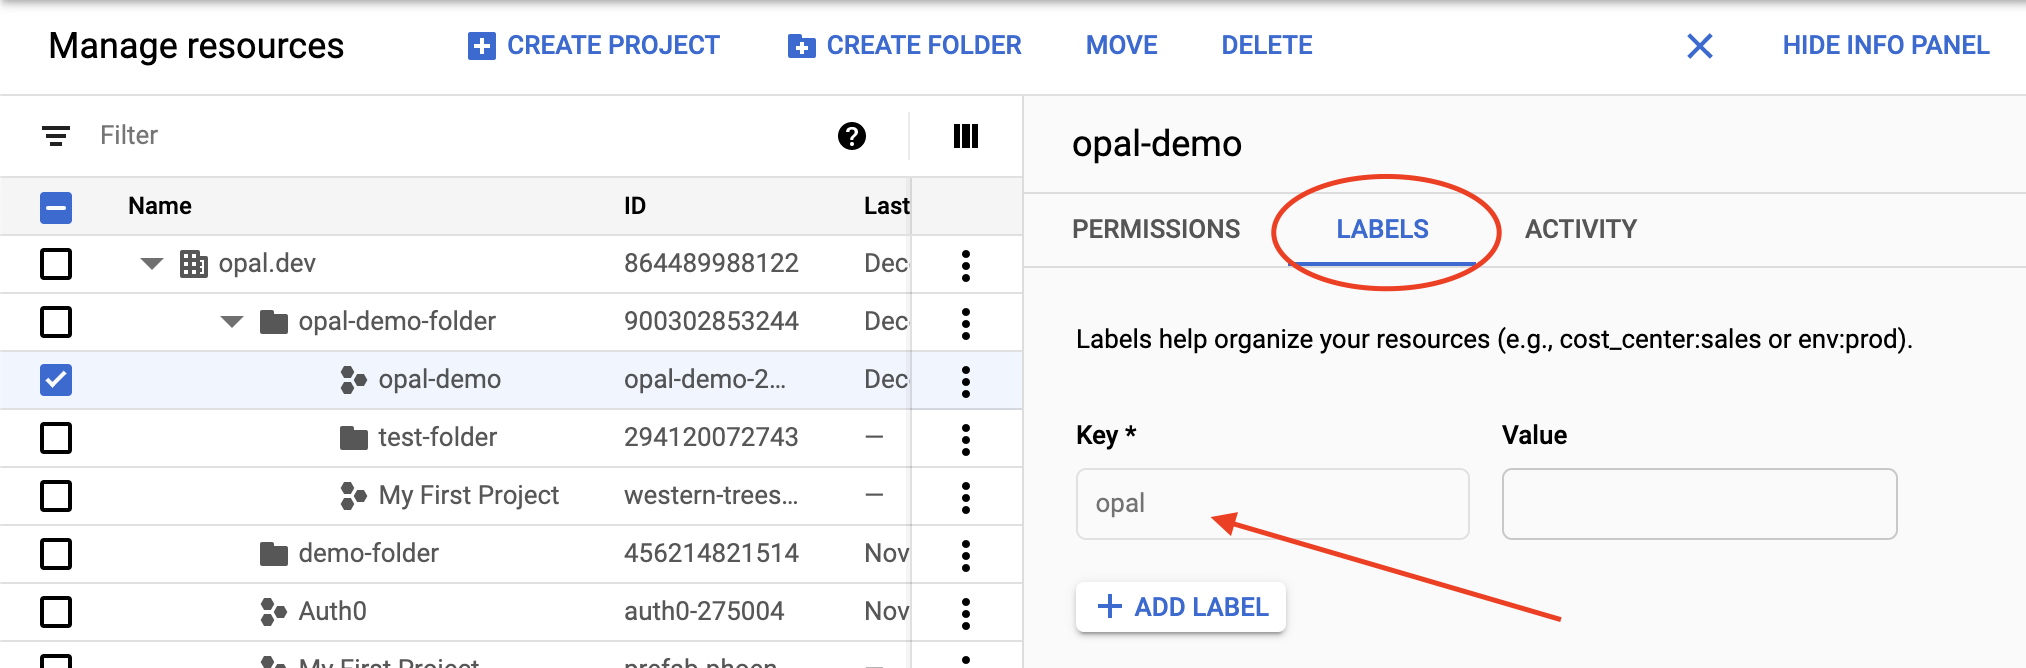 Adding a label to a project in GCP.